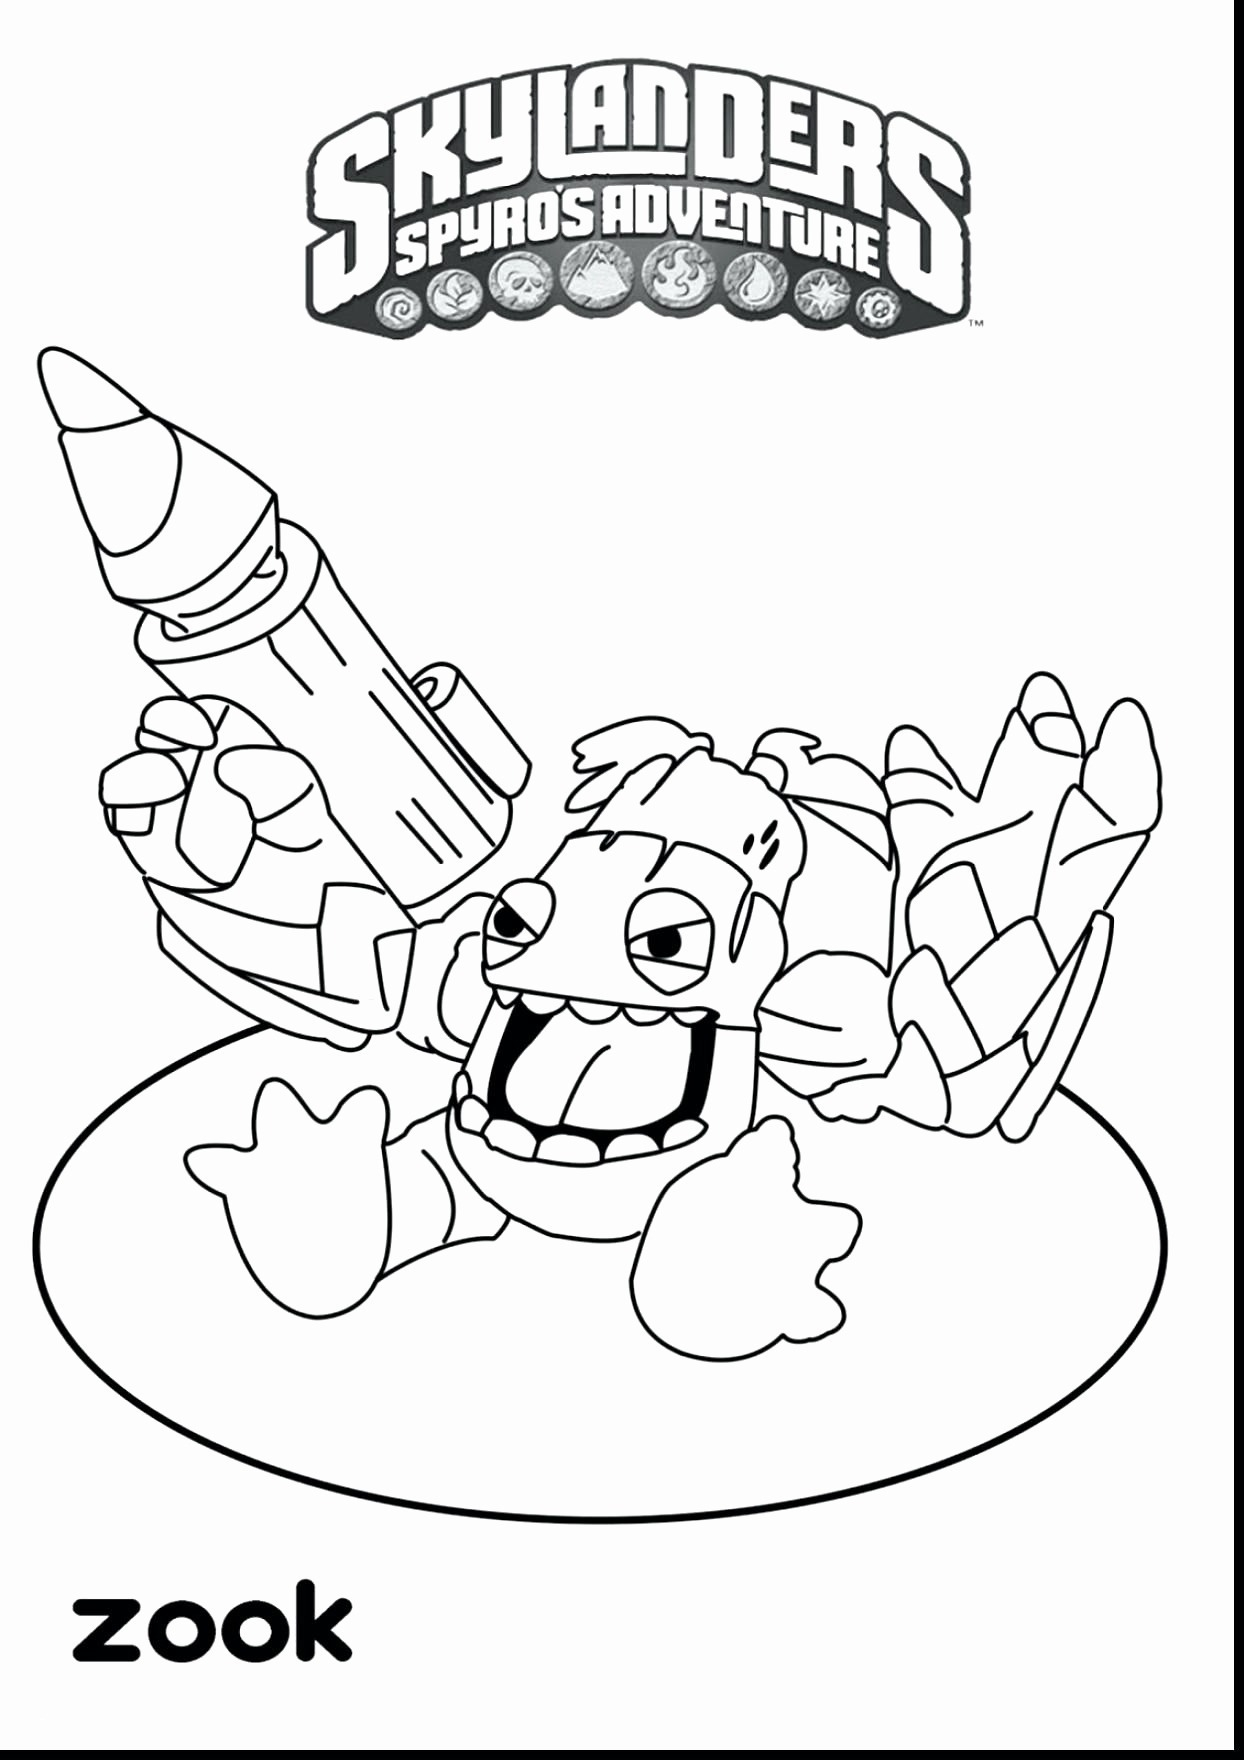 Coloring Pages For 3 Year Olds Christmas Coloring Pages For 10 Year Olds With 3 2 Old Seimado